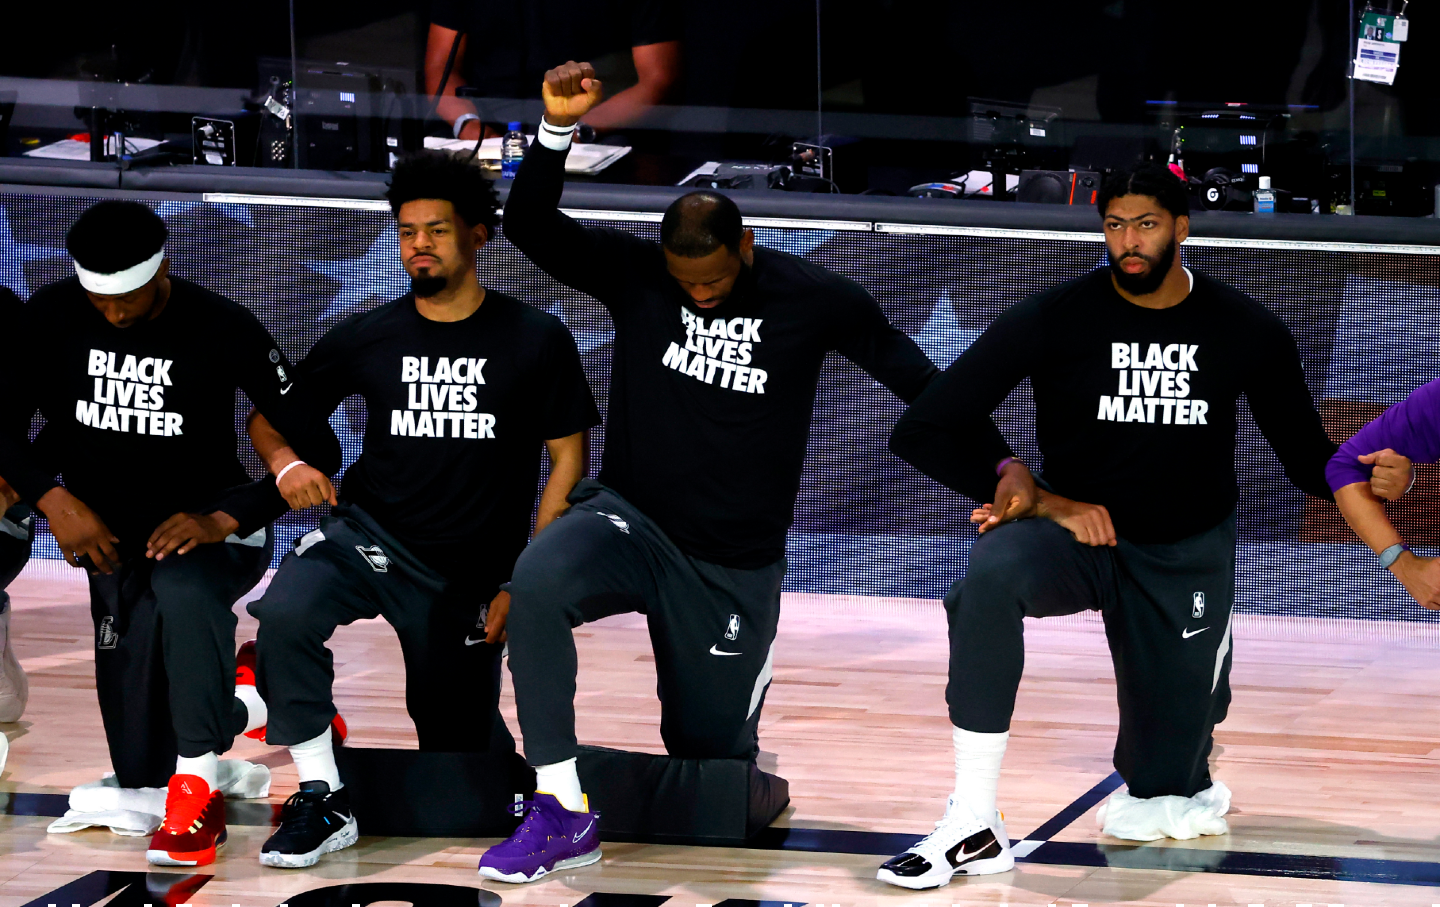 VIDEO Dave Zirin on Claiming Sports as a Place for Community Protest